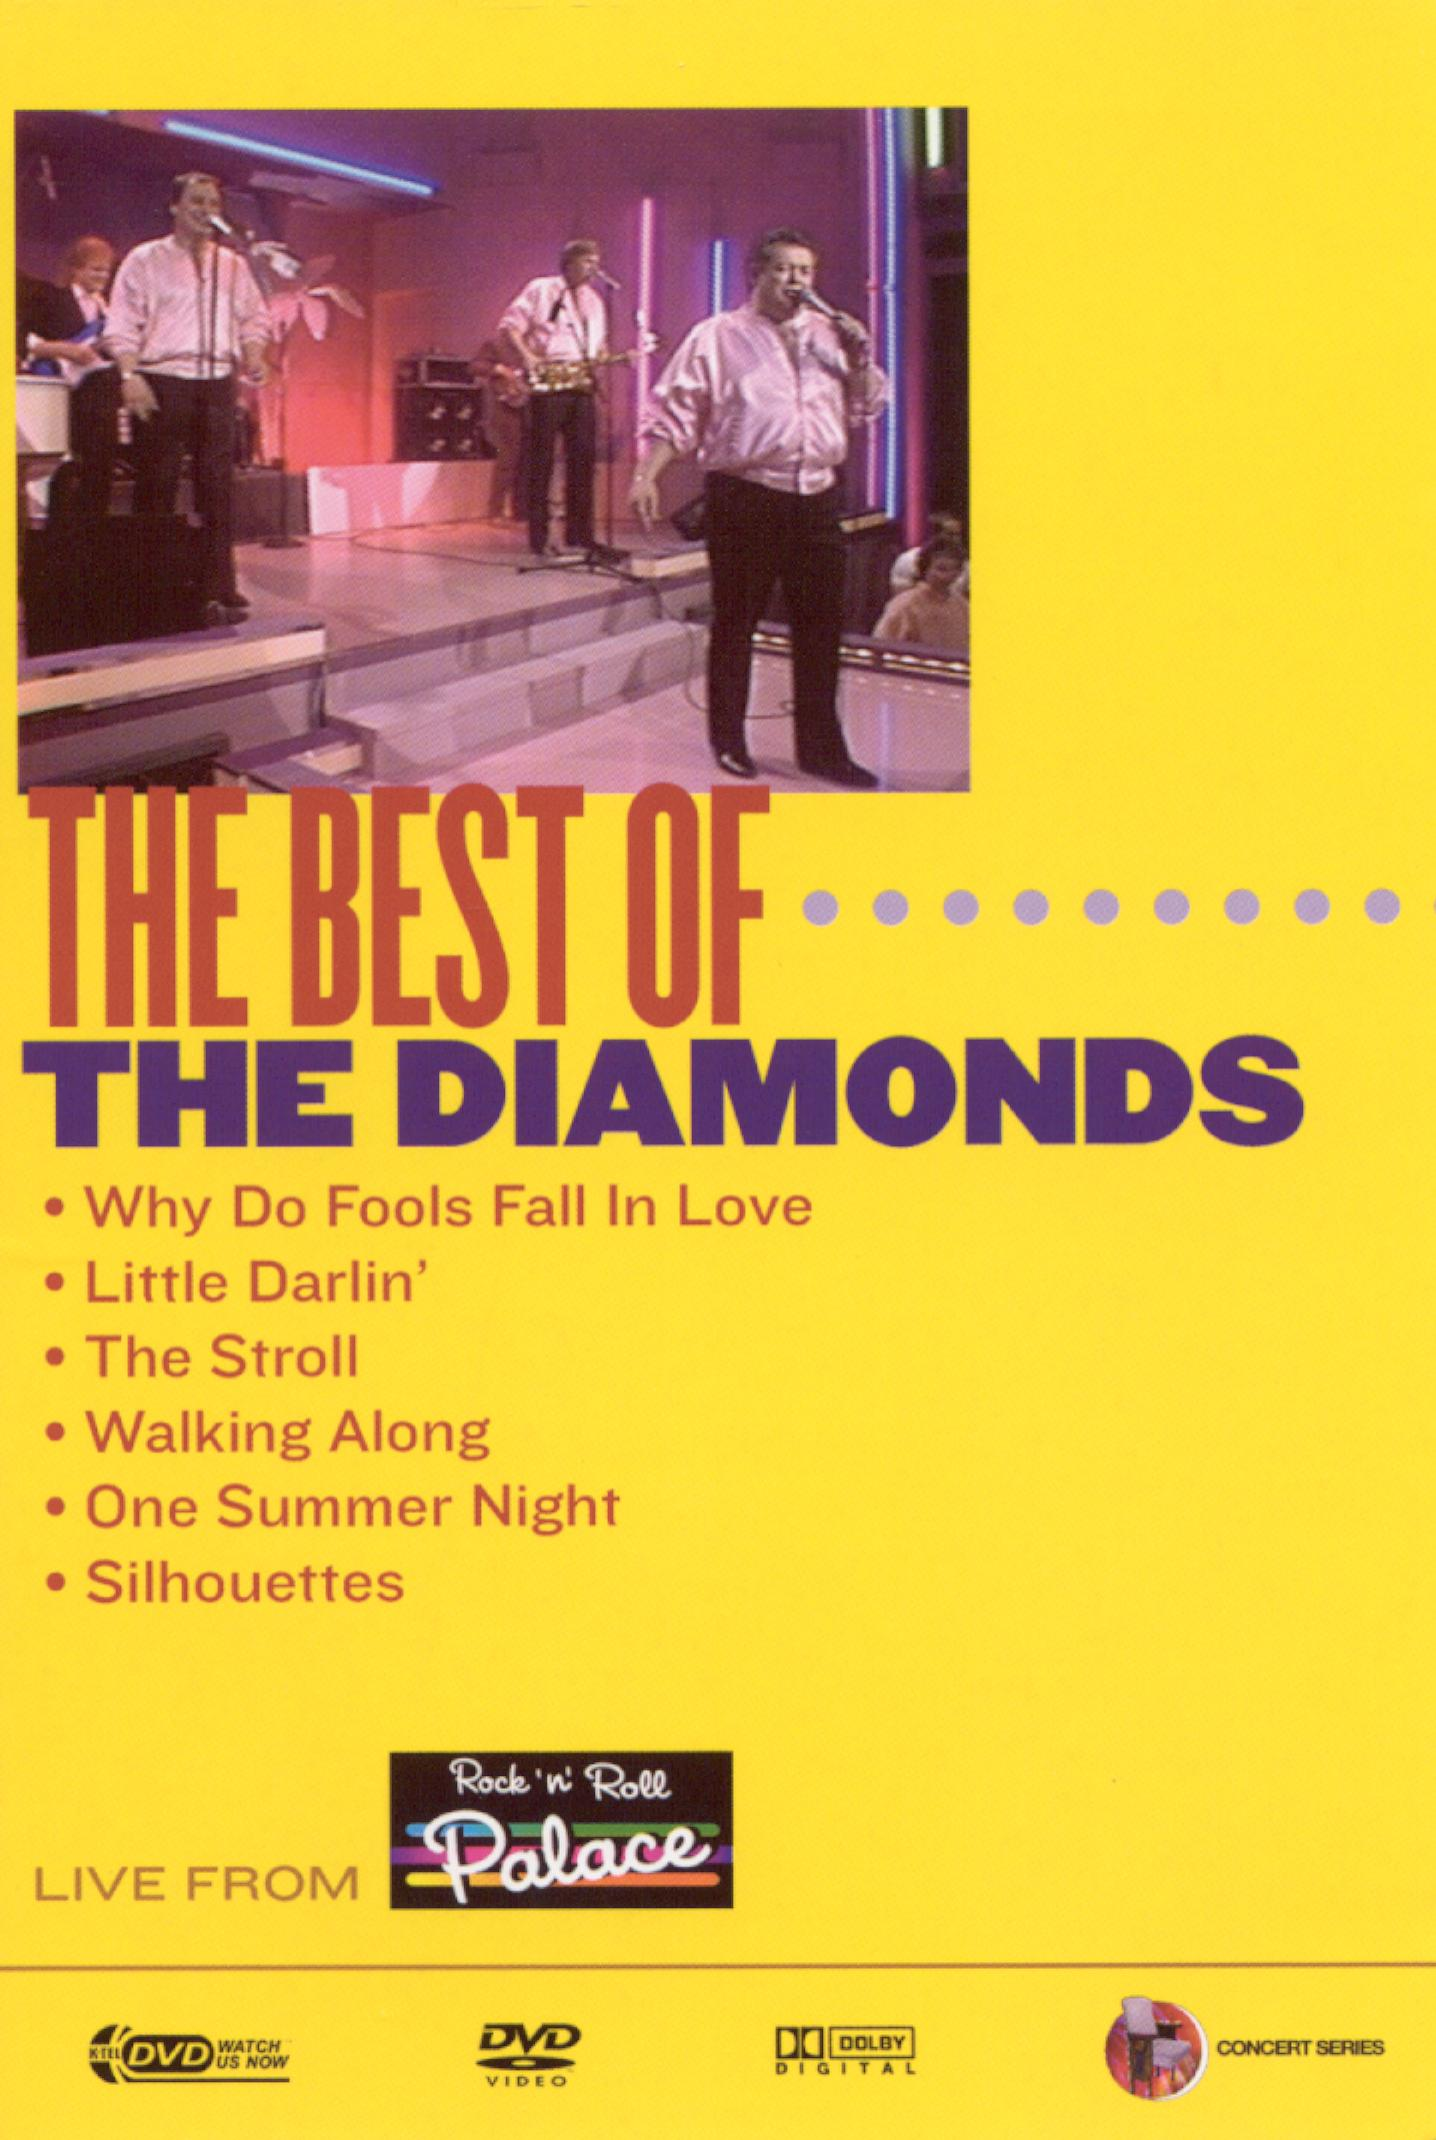 Live From Rock 'n' Roll Palace: The Best of The Diamonds